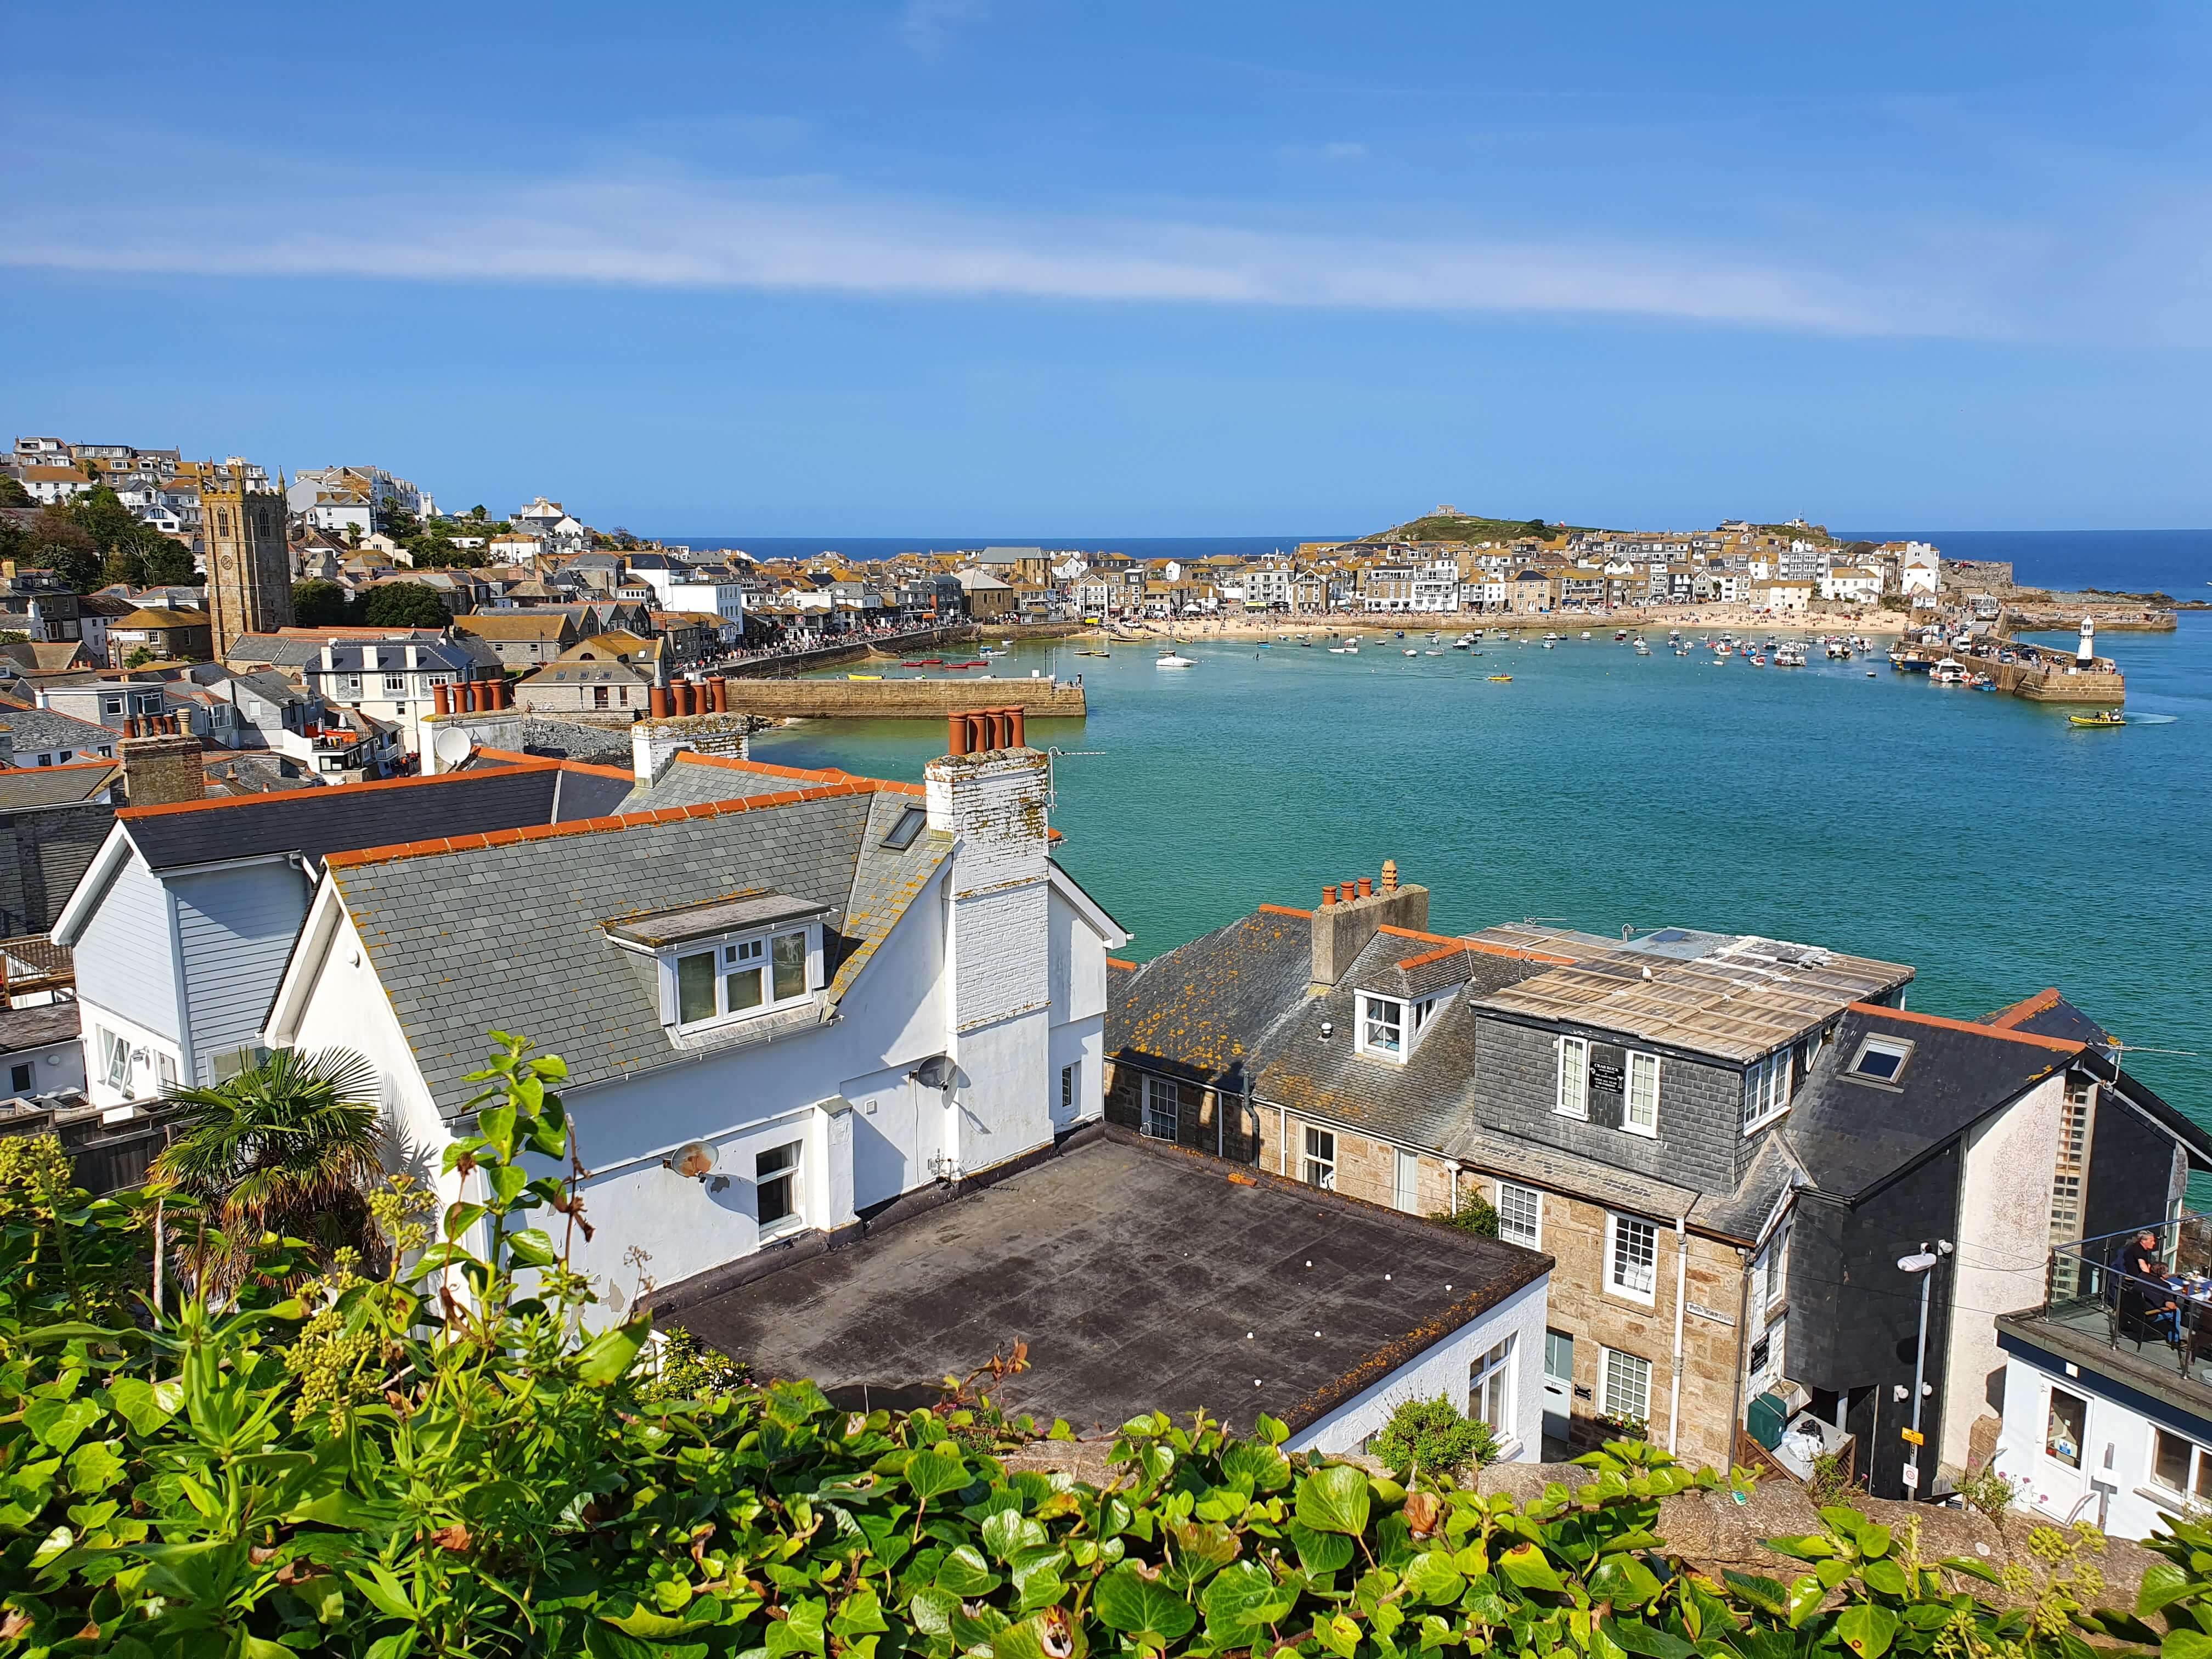 The St Ives harbour, pictured across the top of the rooftops